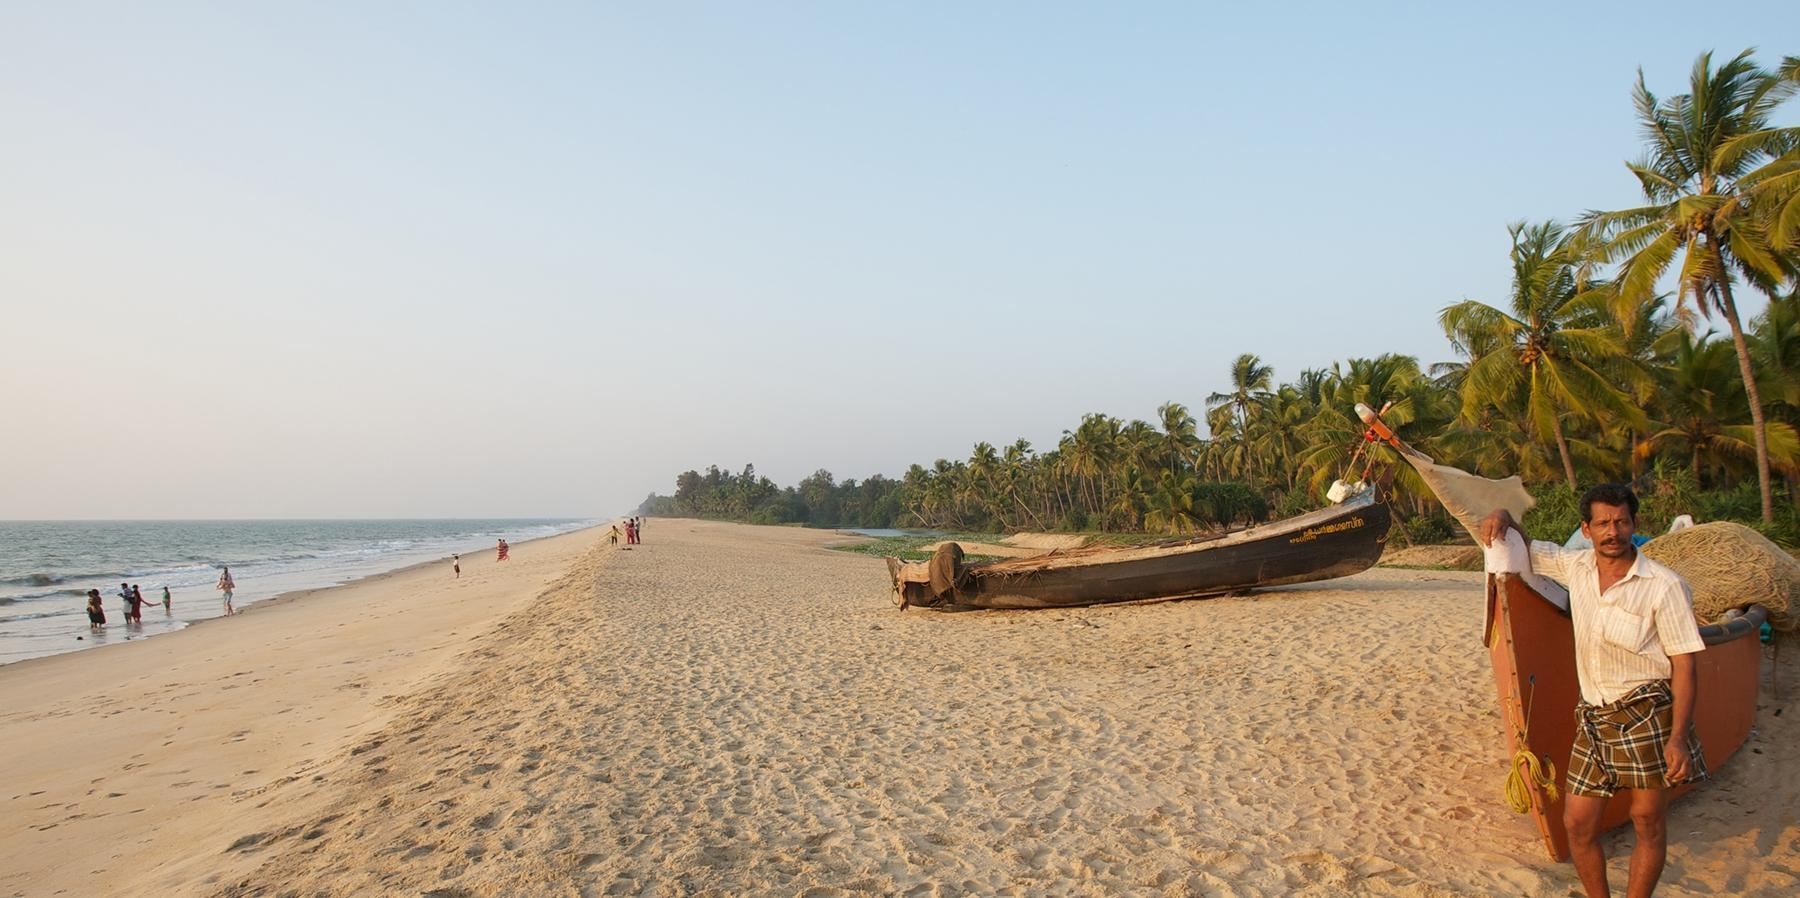 Beaches in Kerala